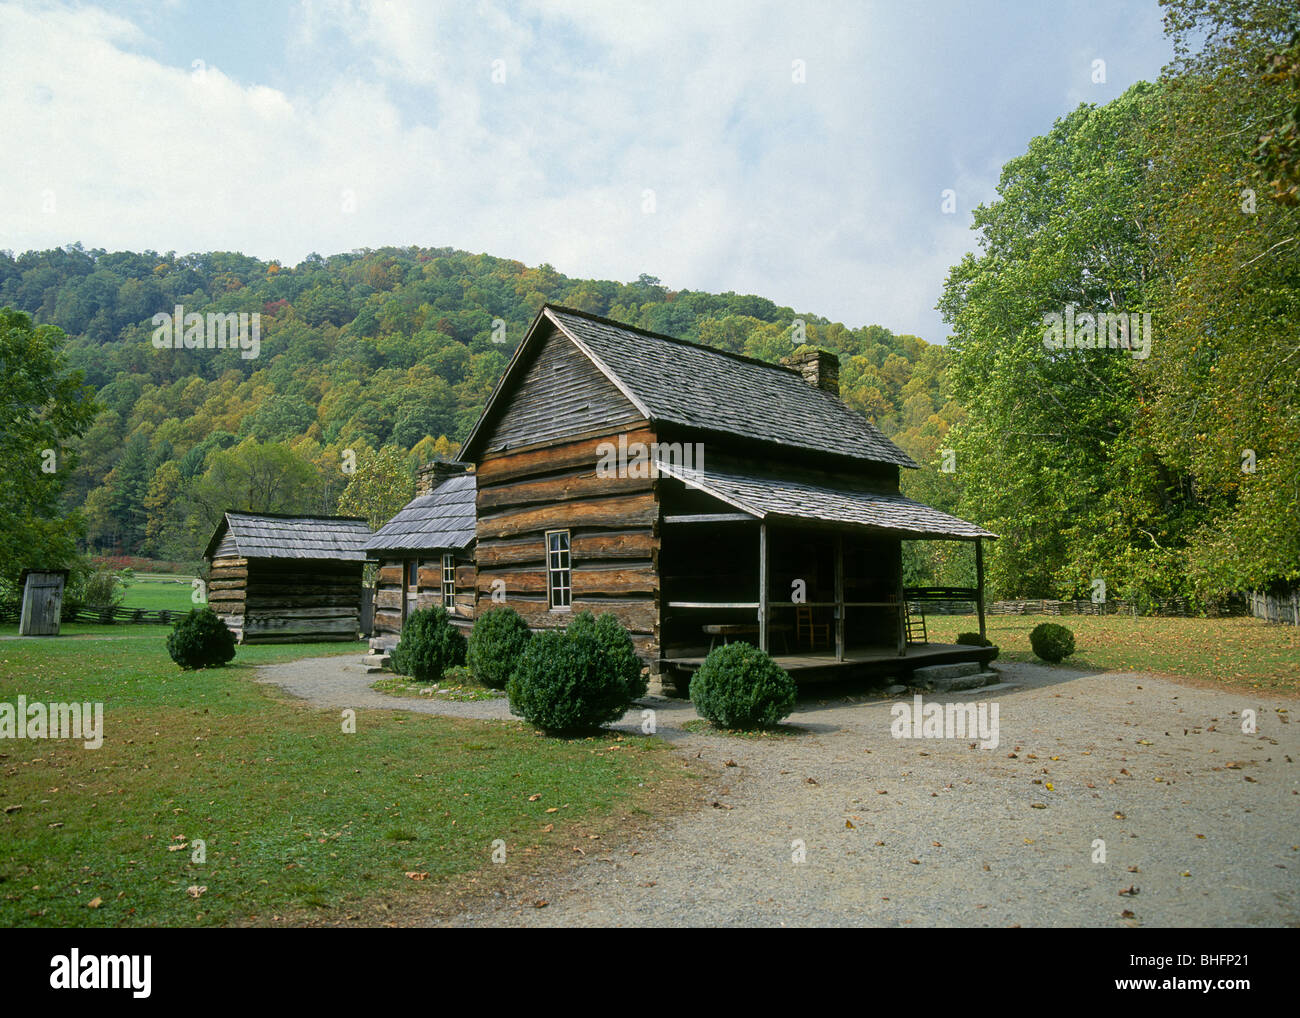 A hand hewn log cabin in the hardwood forest of the great for Cabin in north carolina mountains